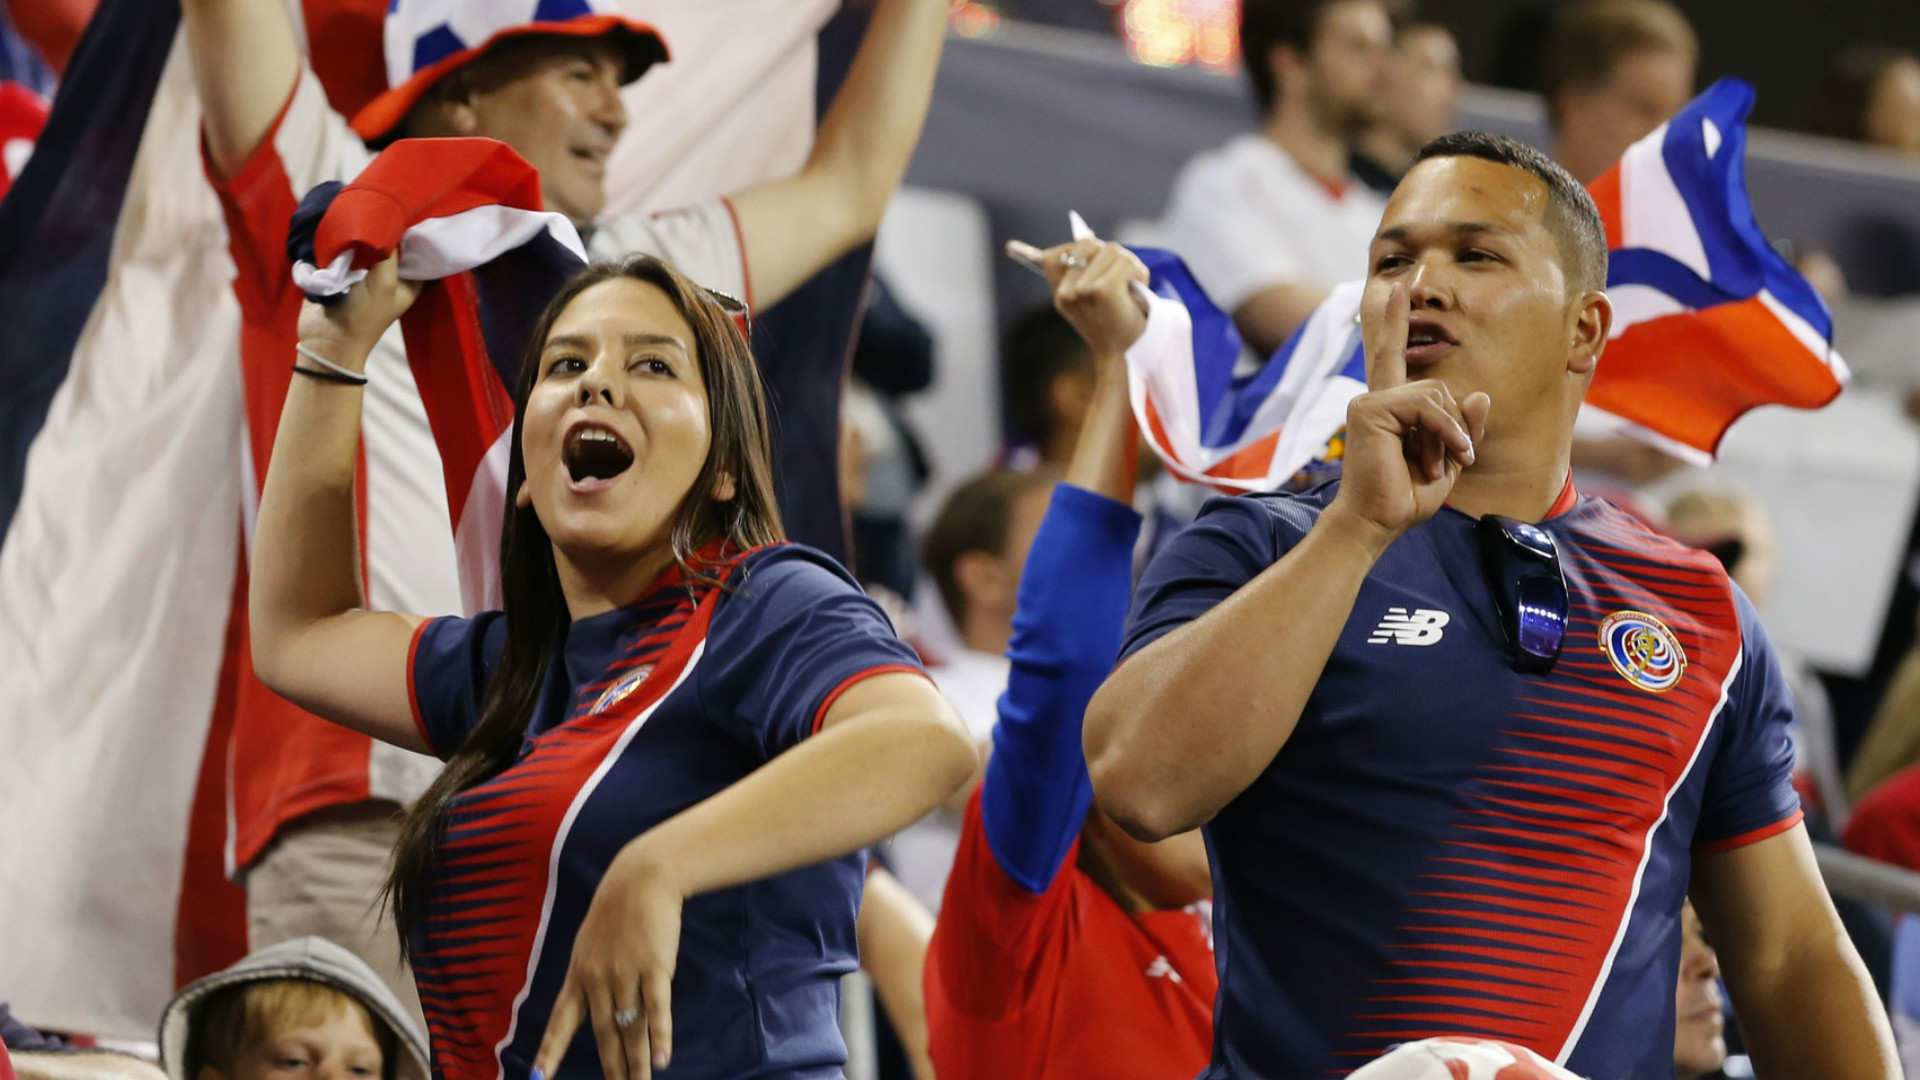 Costa Rica Fans Red Bull Arena 09012017